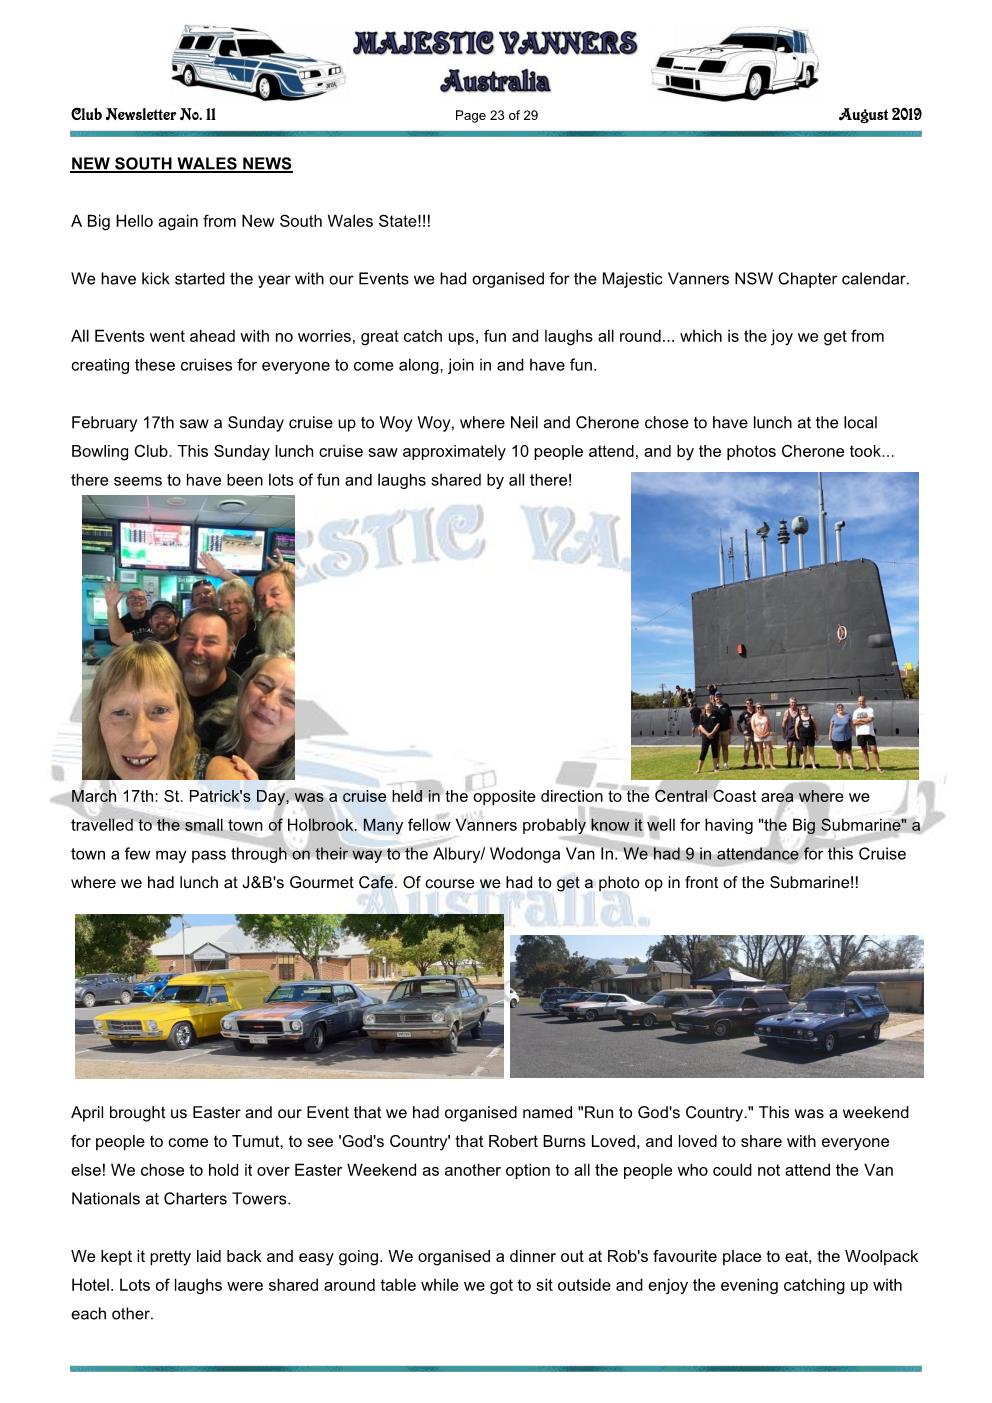 MAJESTIC VANNERS Newsletter Issue No: 11 August 2019 Mv_new61